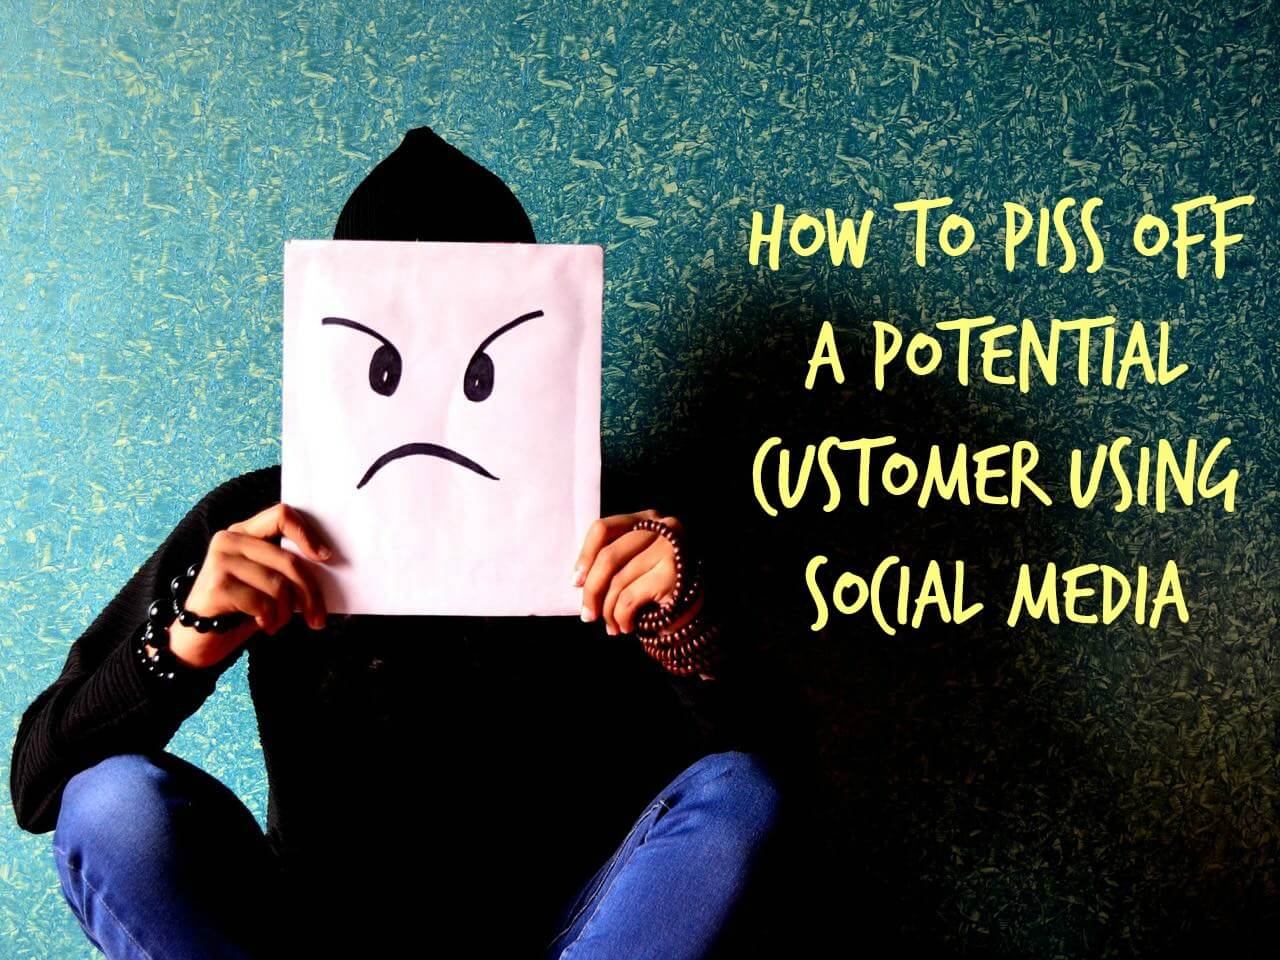 how to piss off a potential customer using social media